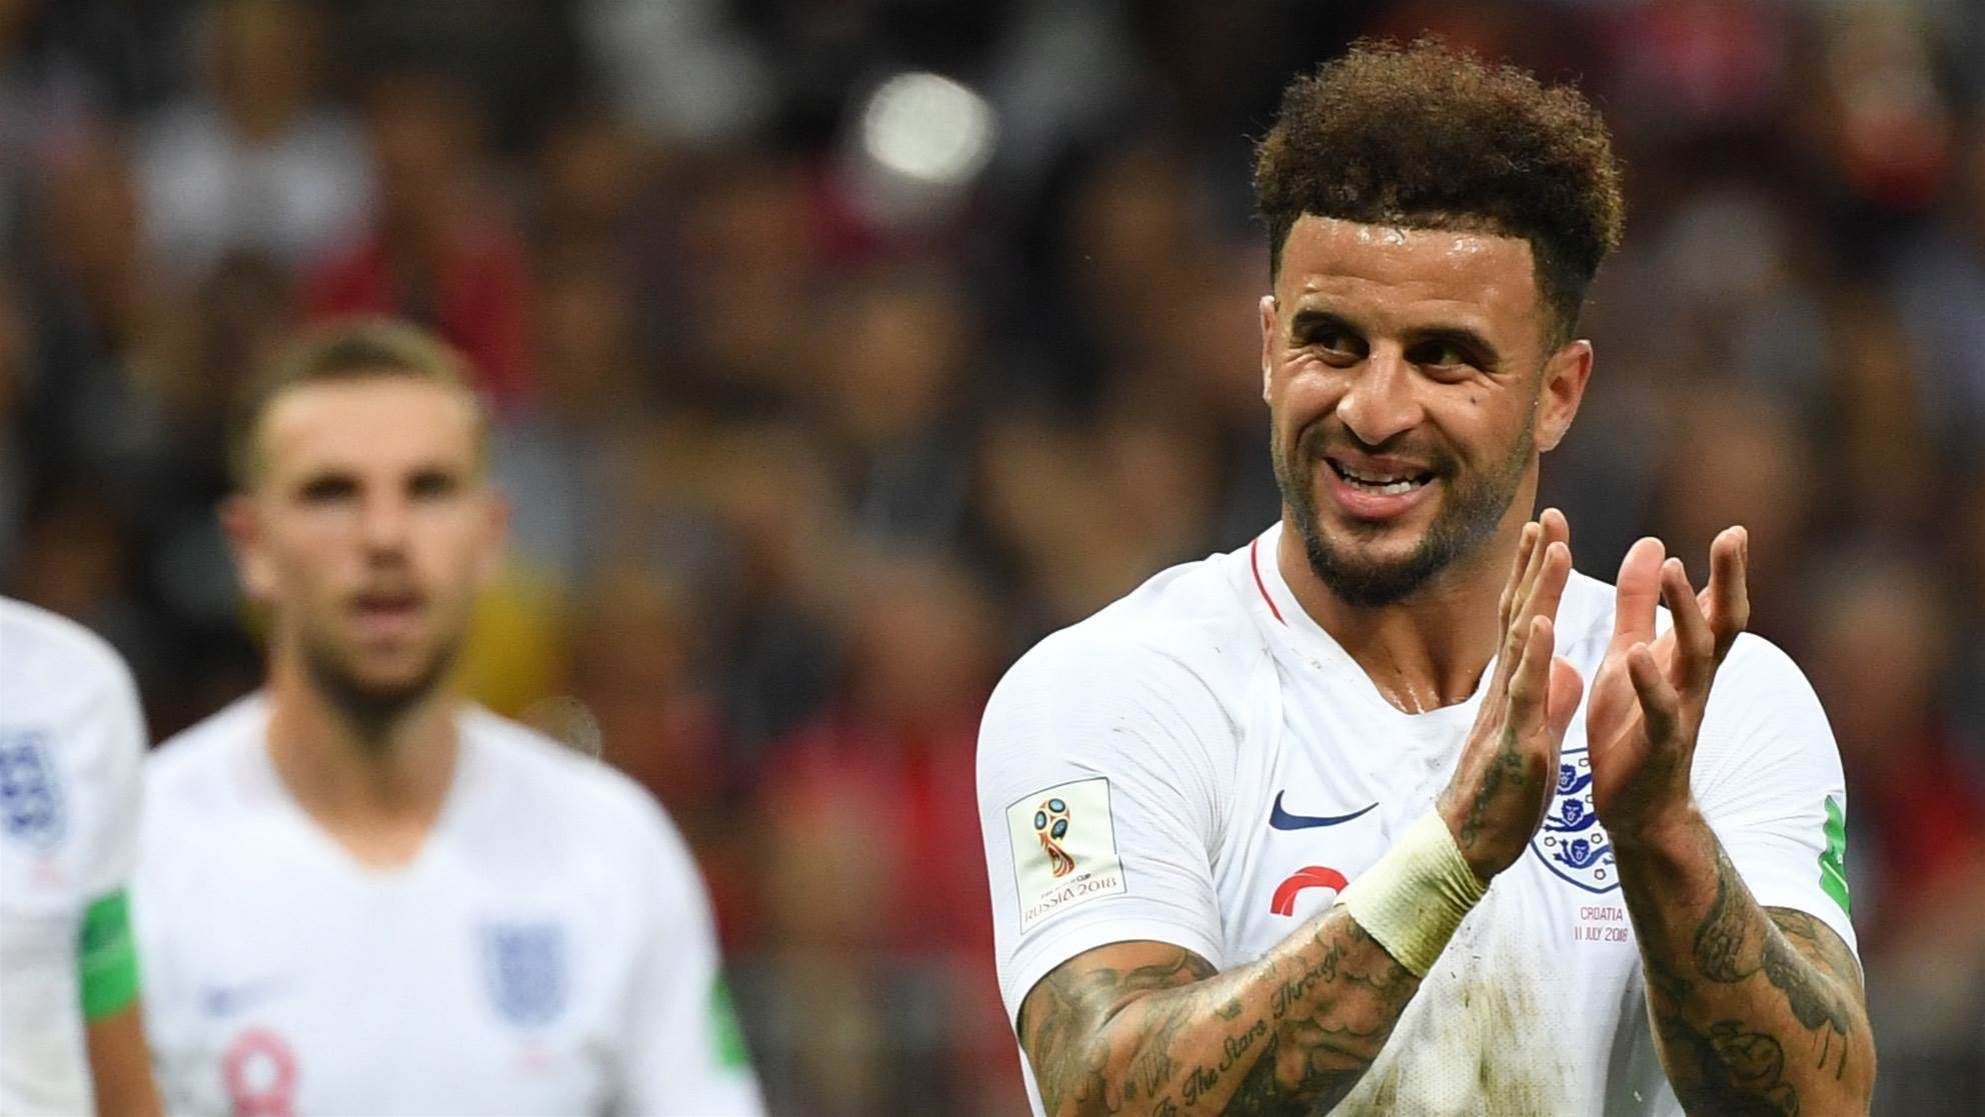 This World Cup has united England, says Walker